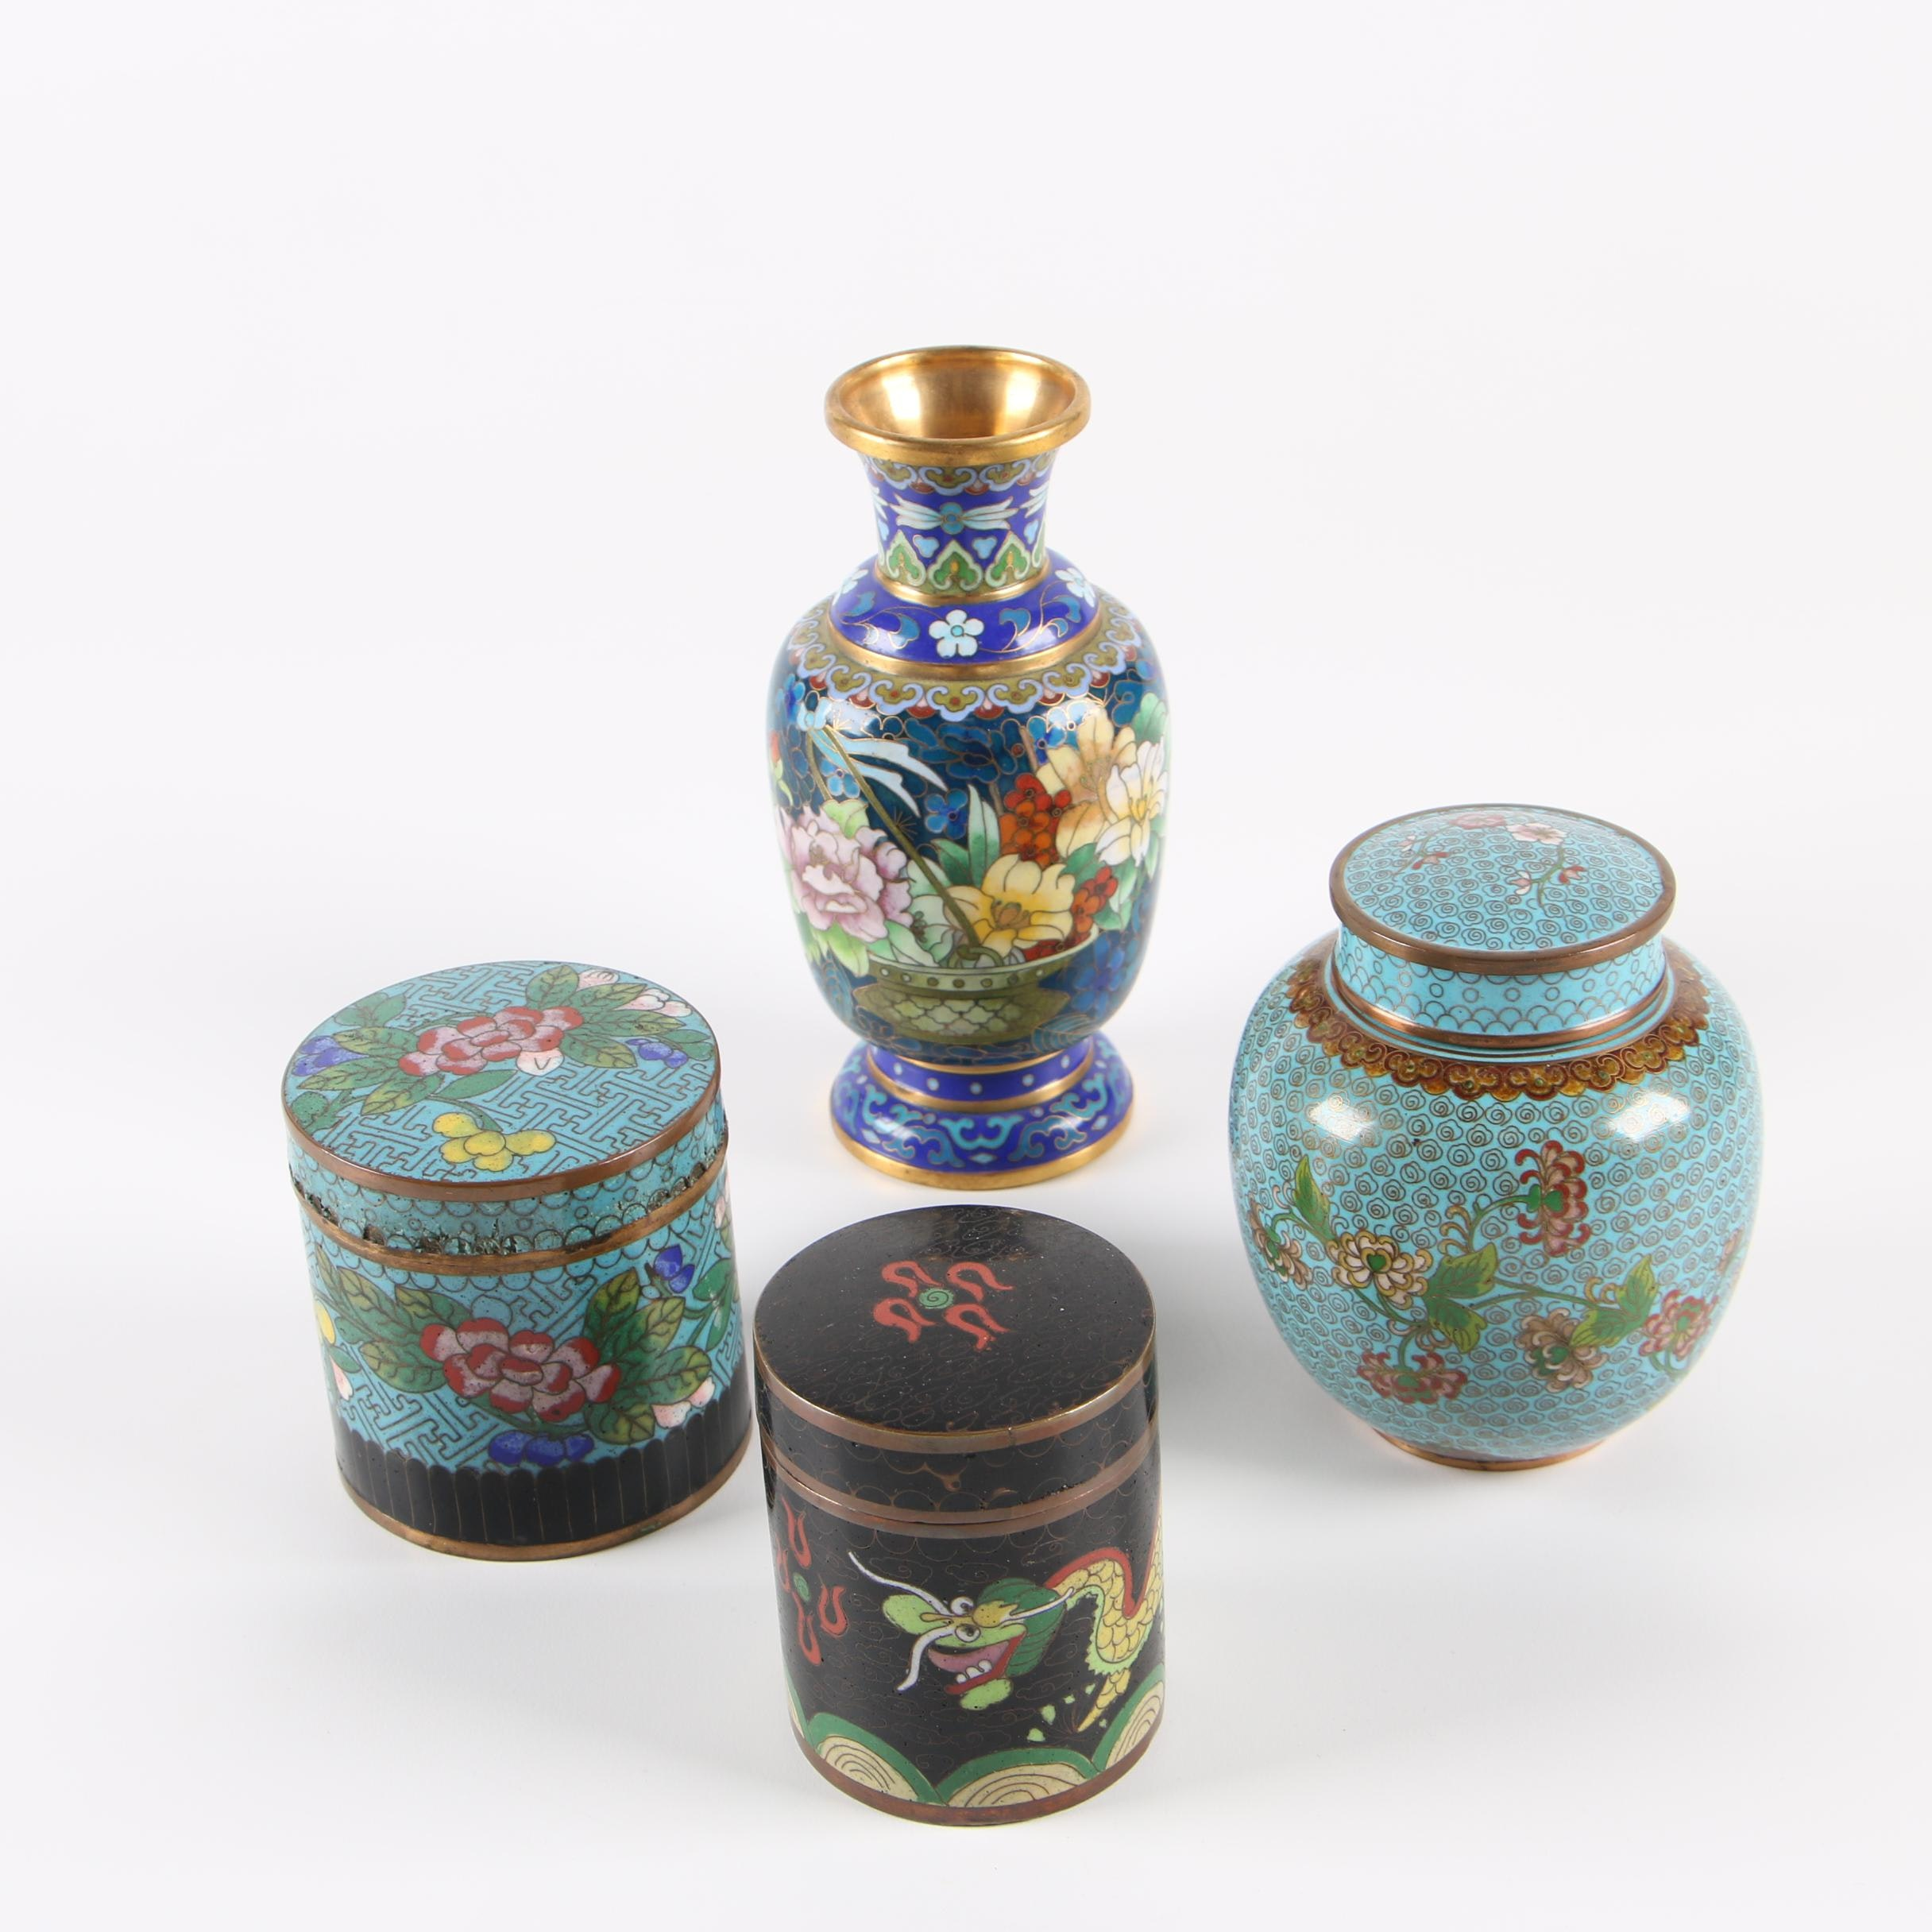 Chinese Cloisonné Jars and Vase with Dragon and Floral Motifs